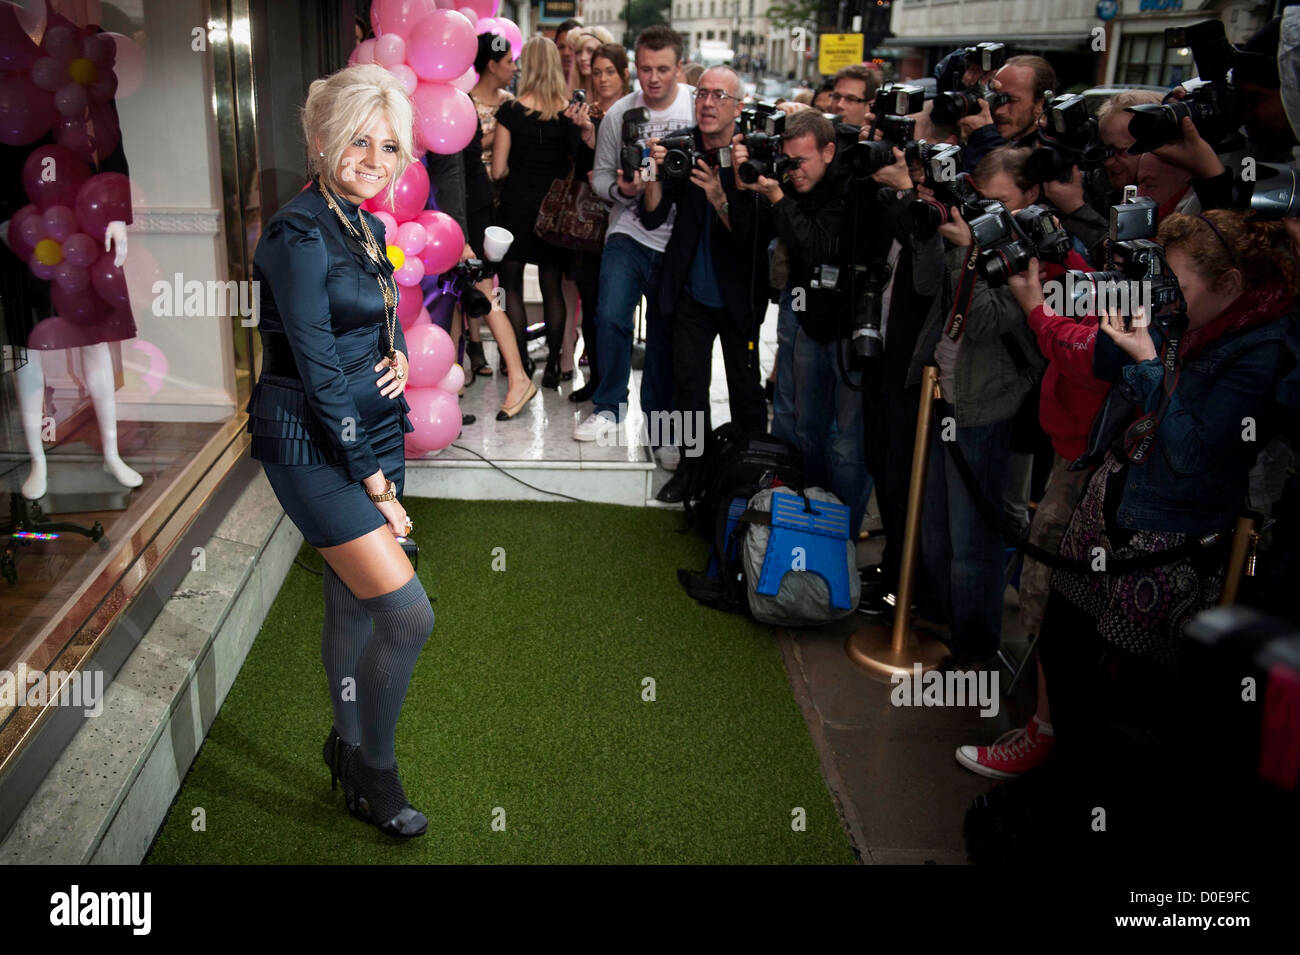 Pixie Lott at Juicy Couture in London's West End London, Engalnd - Stock Image